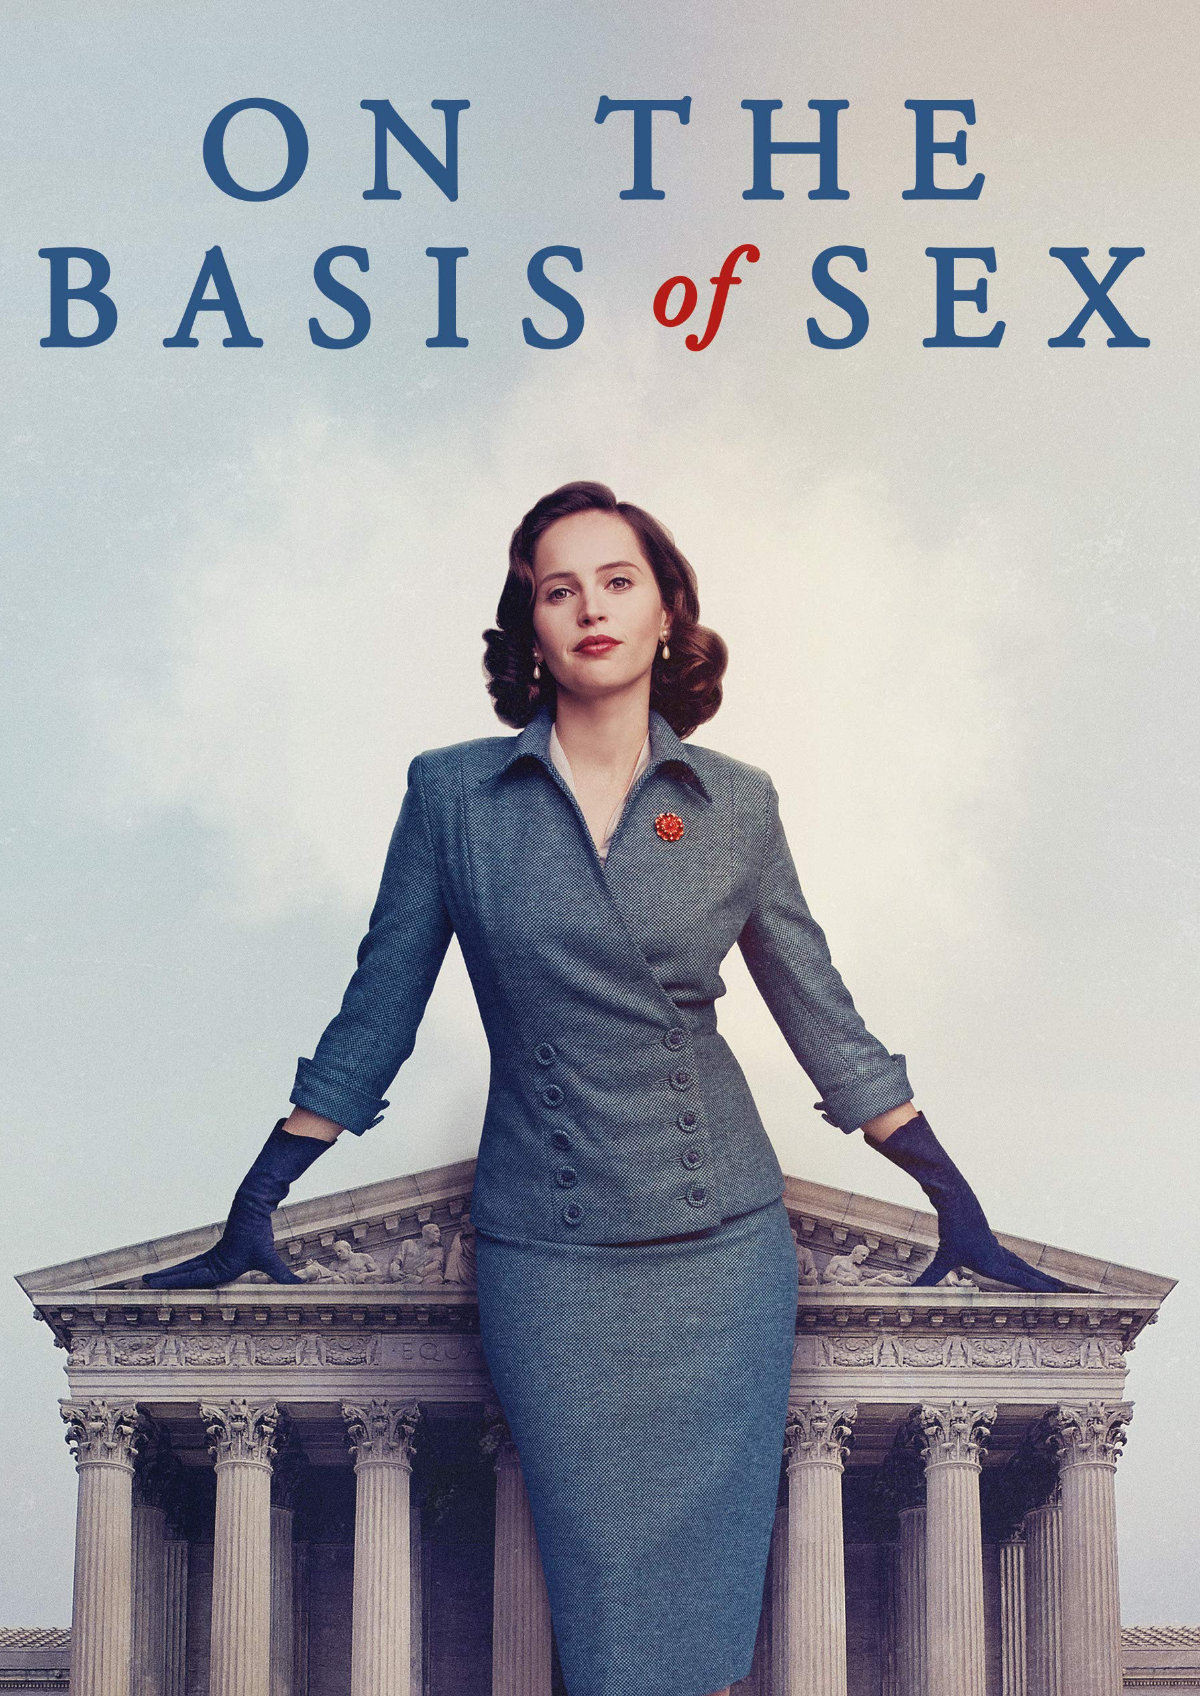 'On the Basis of Sex' movie poster